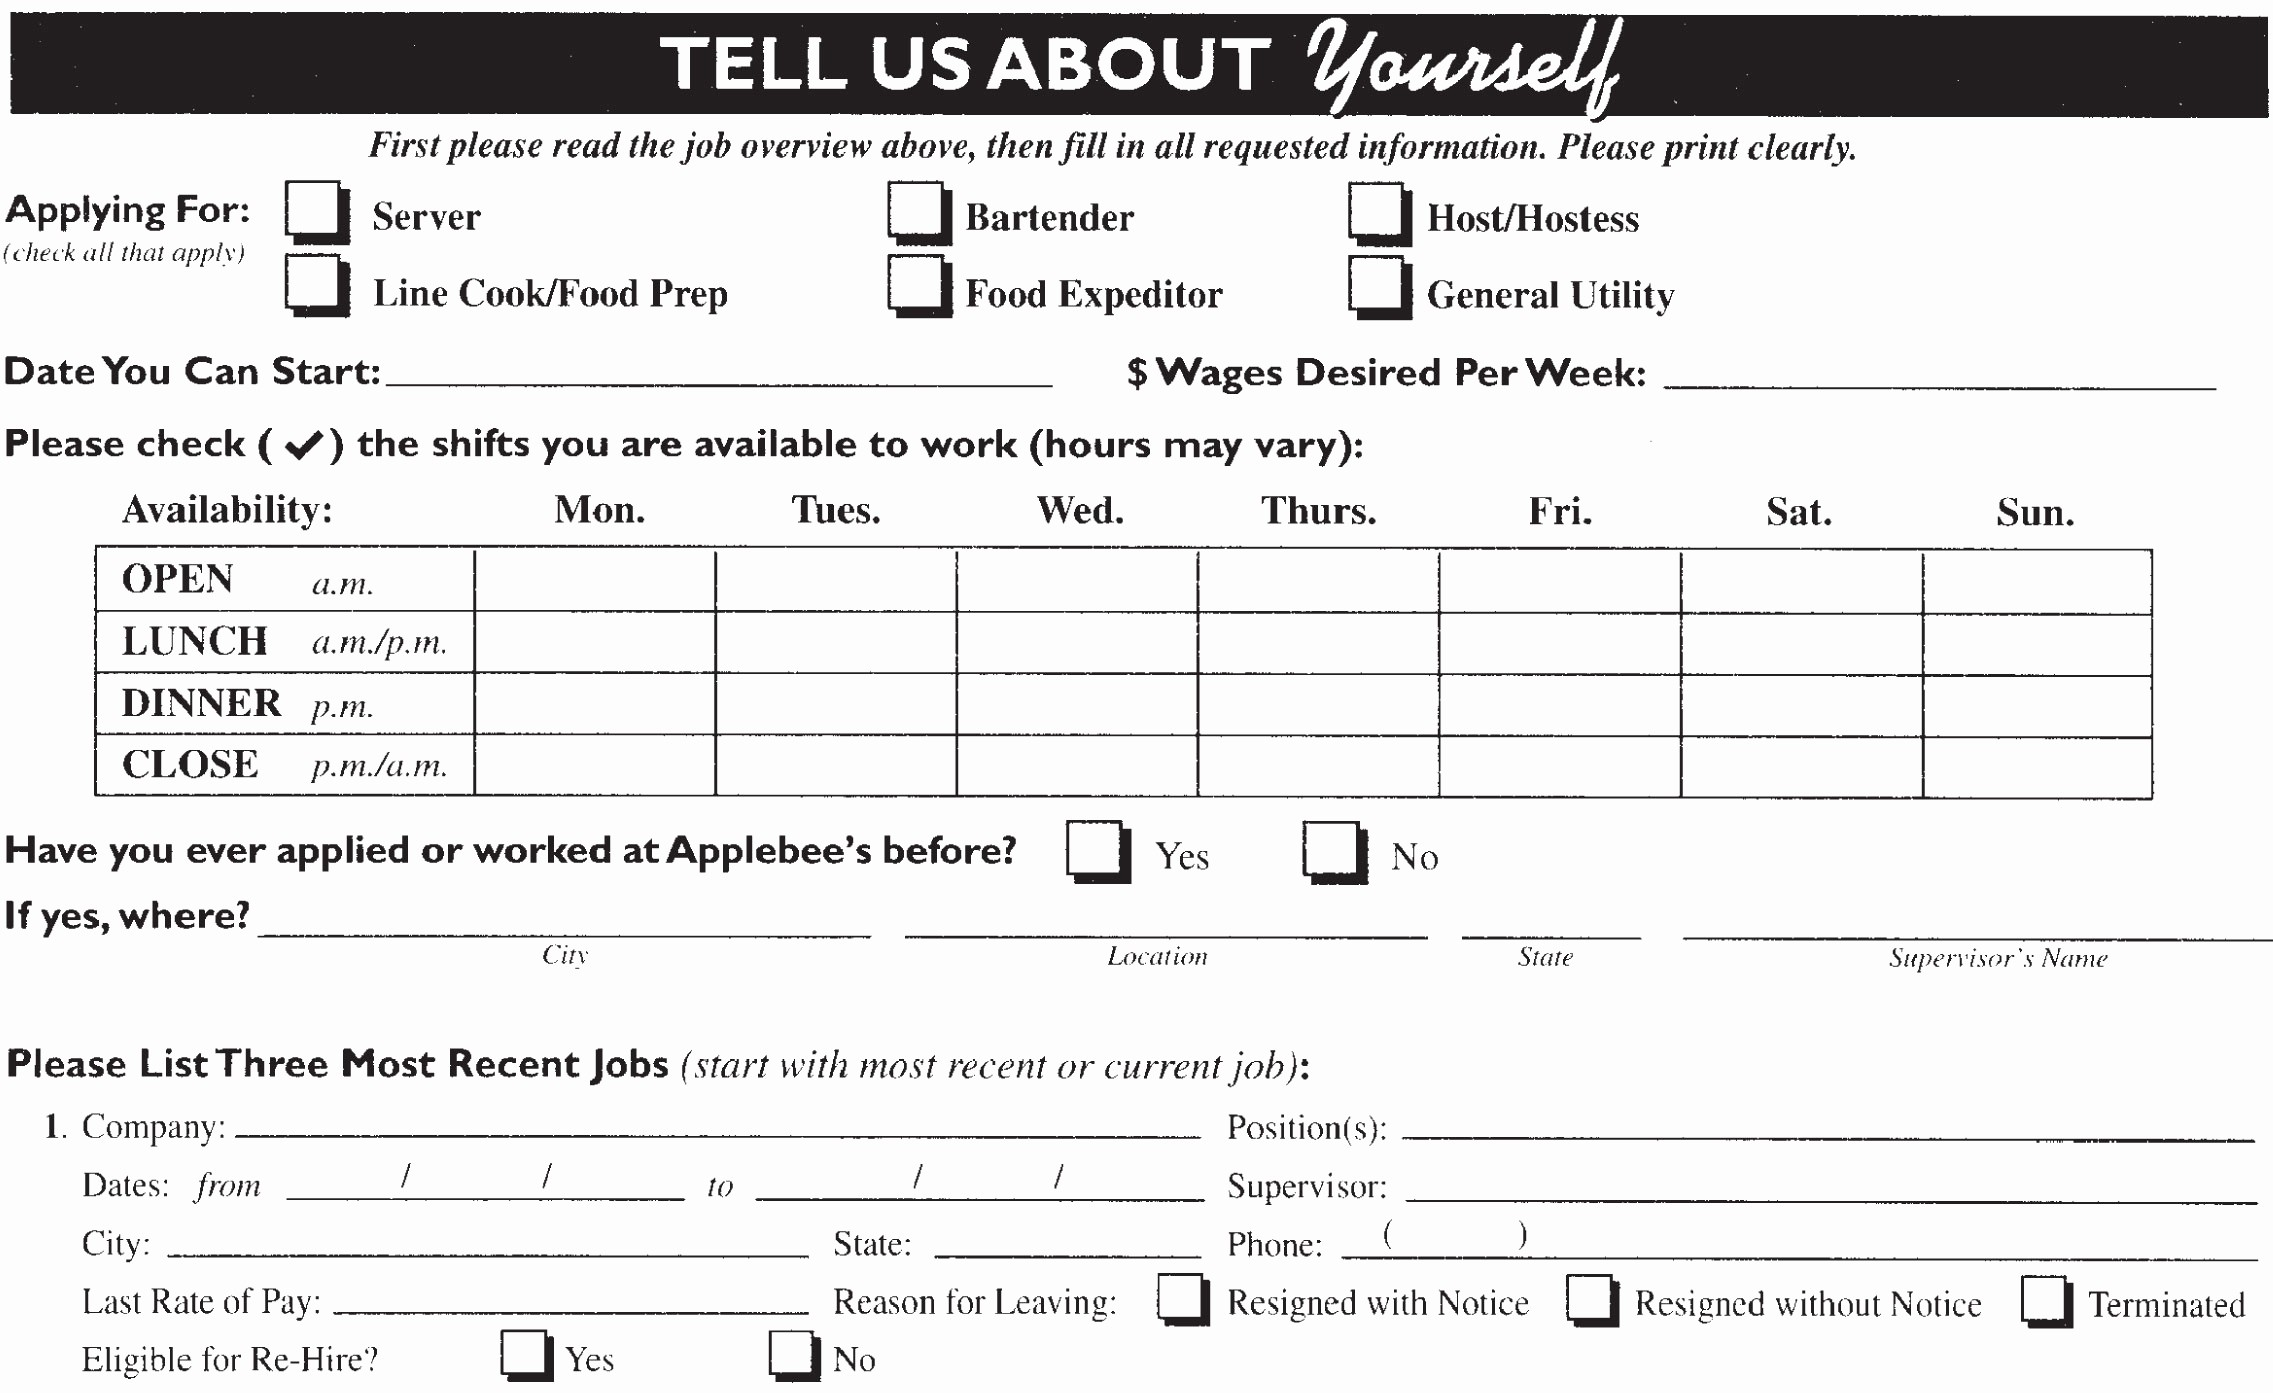 Application for Employment form Pdf Lovely Applebee S Job Application Printable Employment Pdf forms